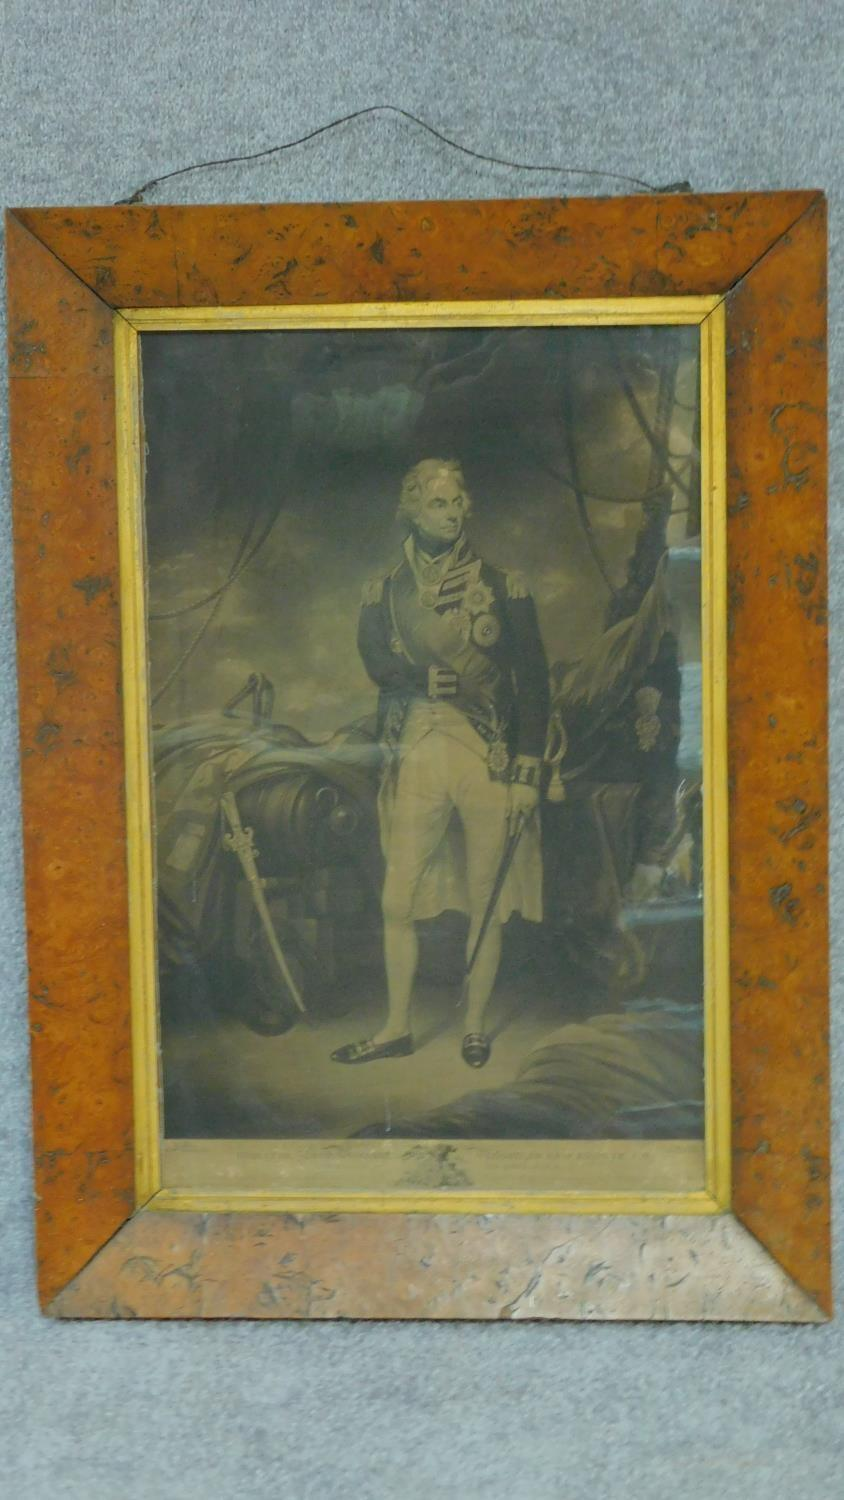 A 19th century maple framed and glazed engraving, Lord Viscount Nelson, Duke of Bronte, Engraved